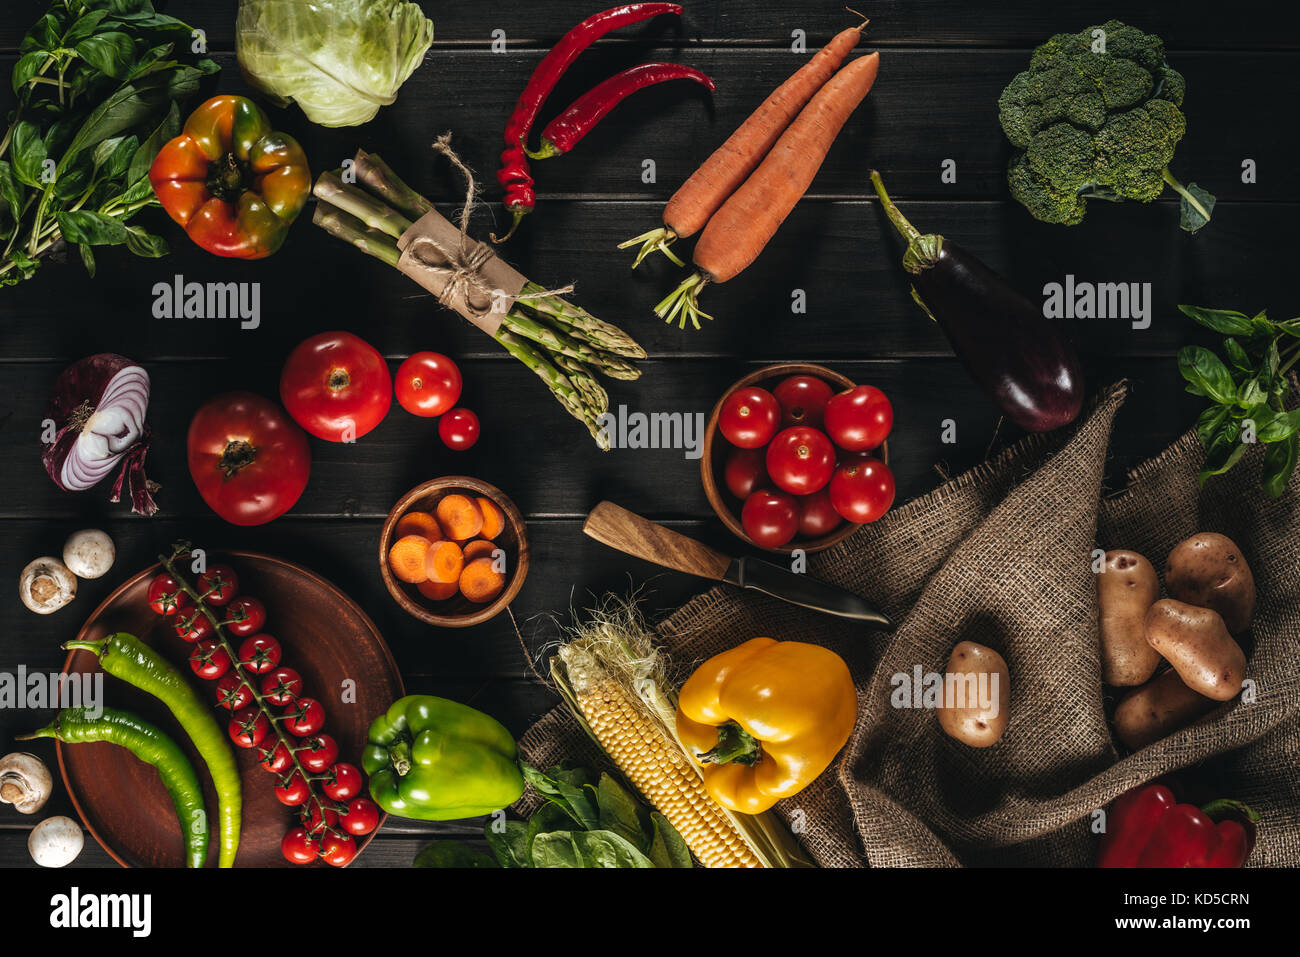 vegetables  - Stock Image